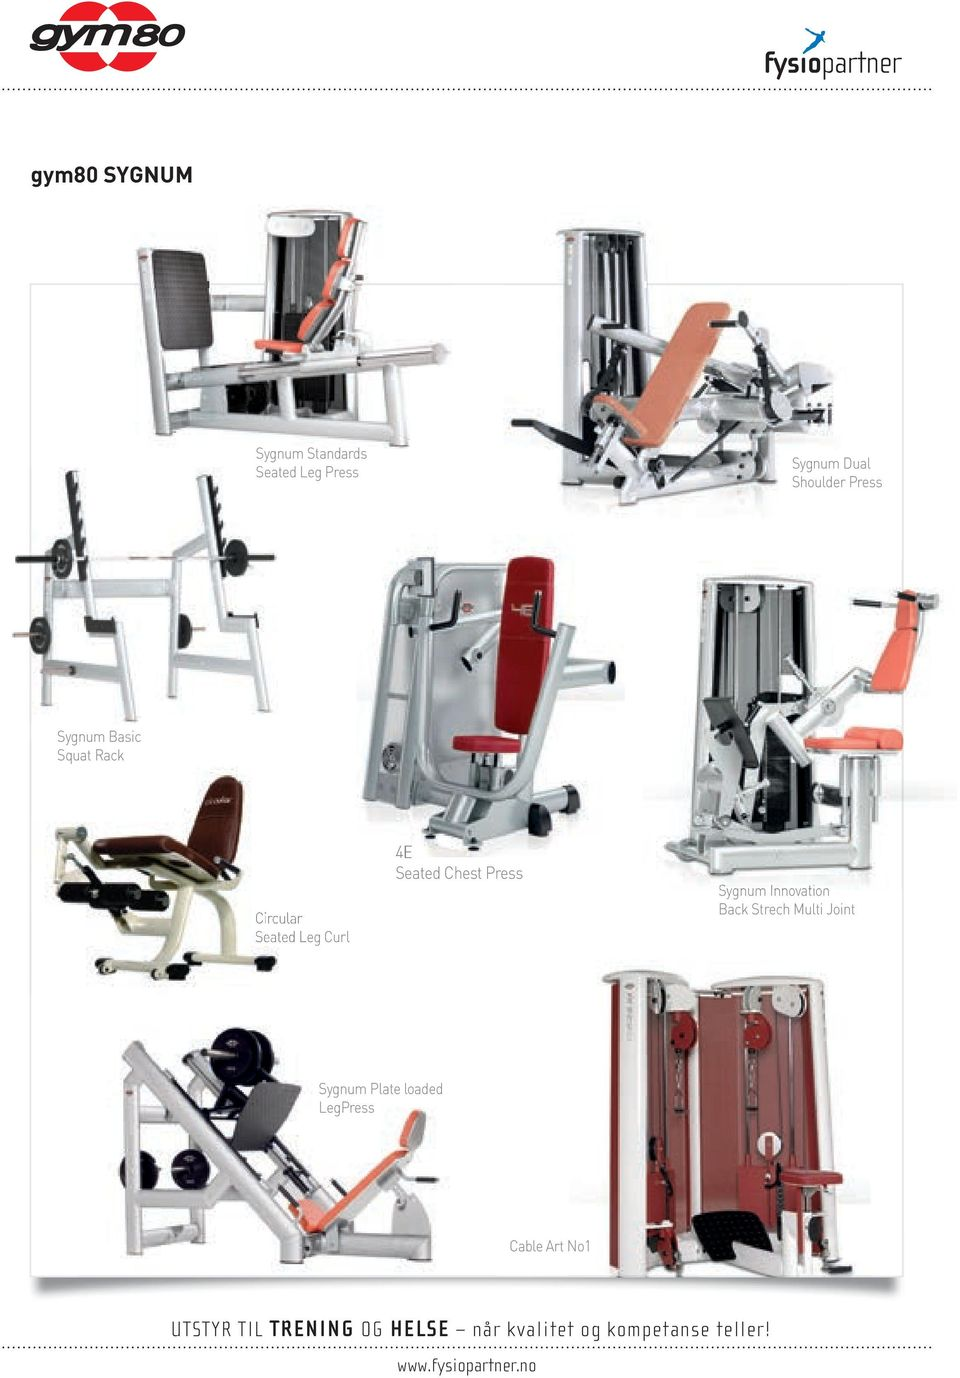 Seated Leg Curl 4E Seated Chest Press Sygnum Innovation